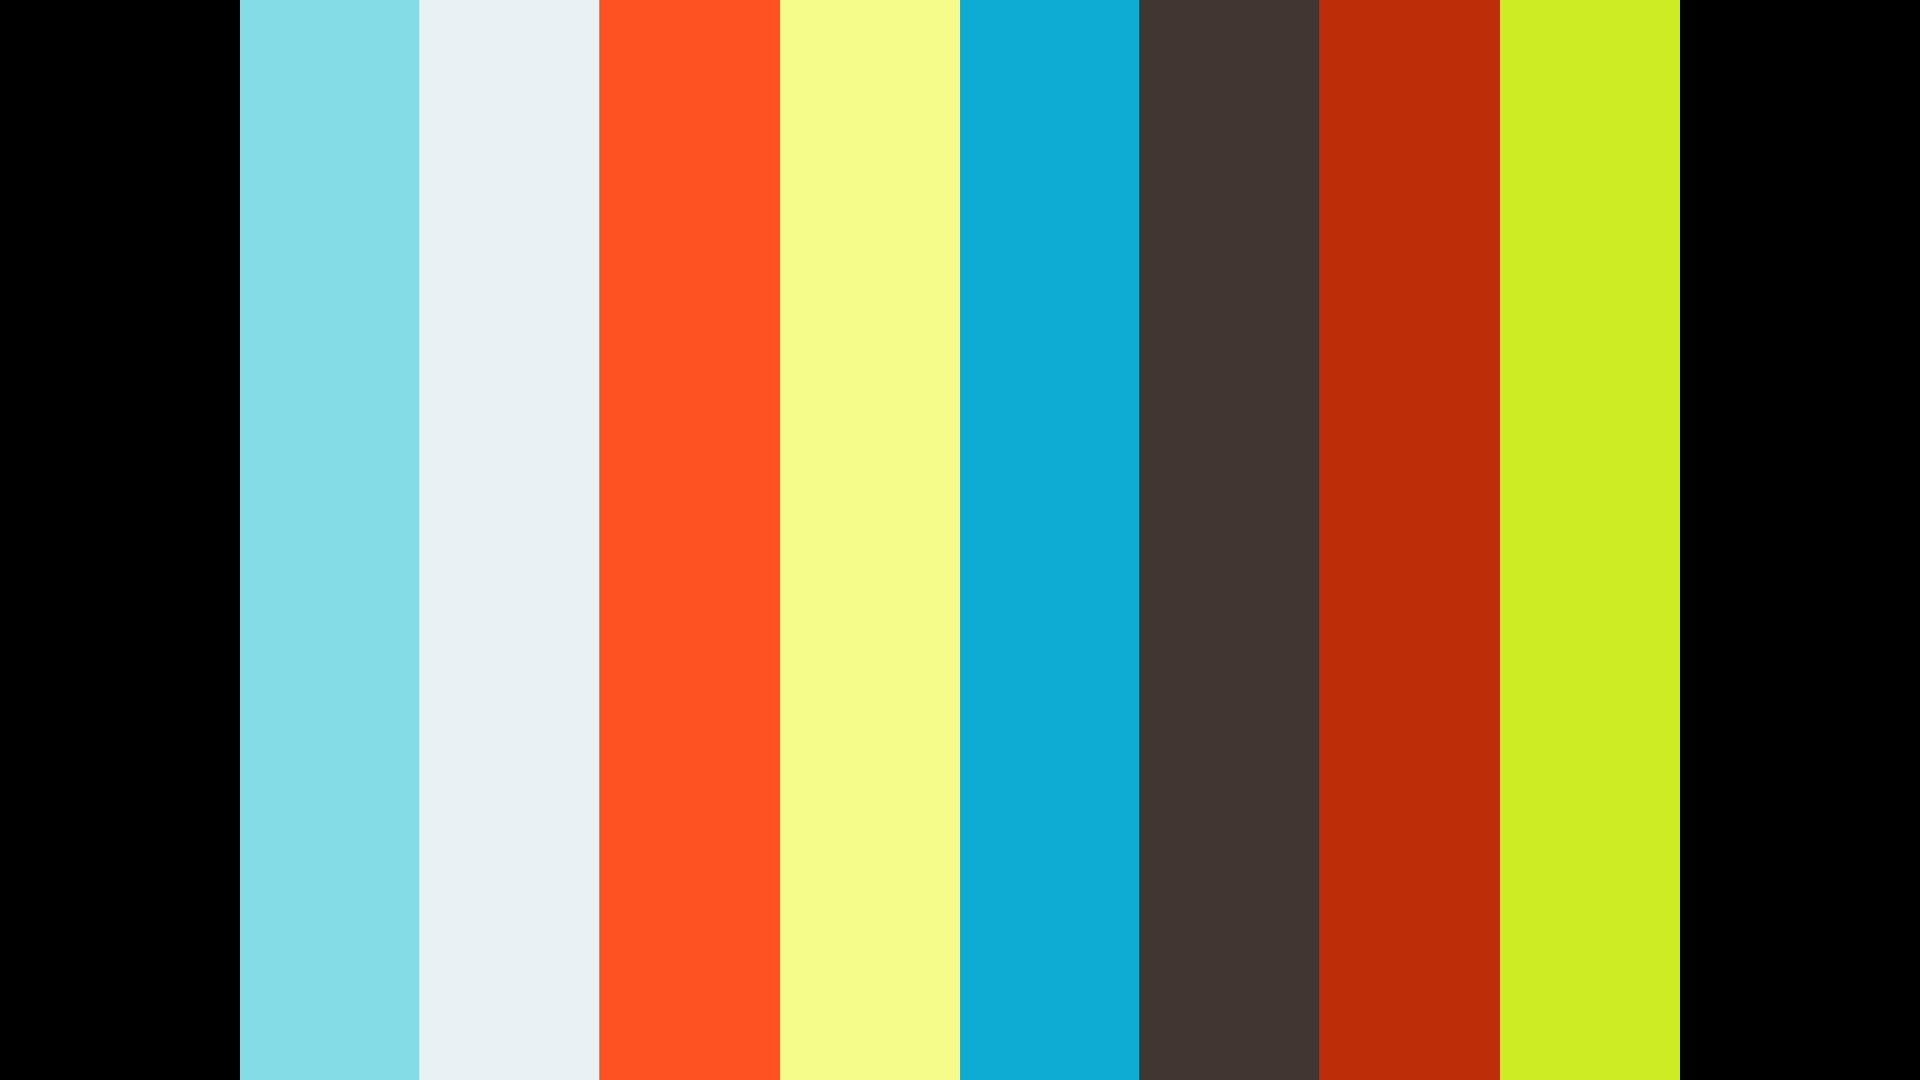 Introduction of Jack Halberstam by Ewa Majewska [2]